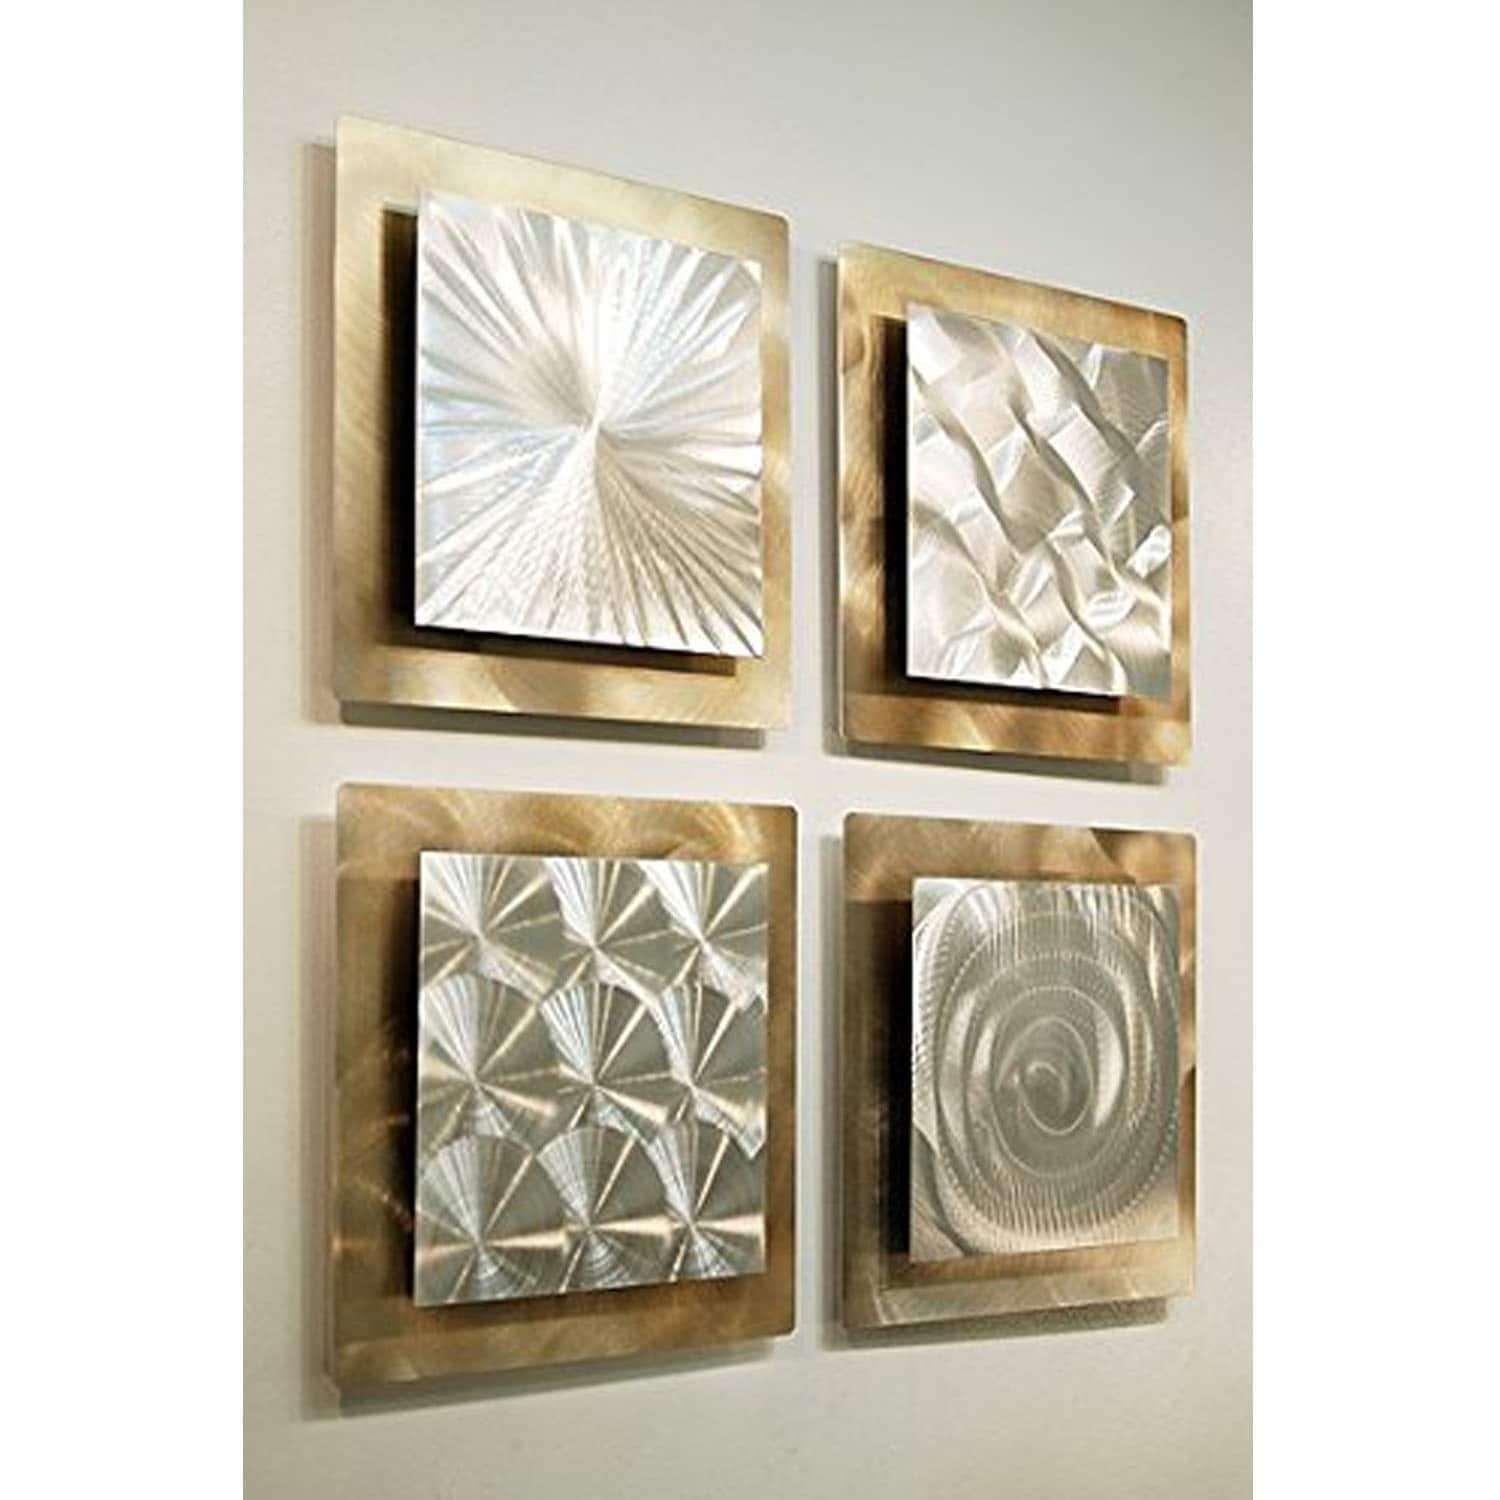 Statements2000 Set Of 4 Gold / Silver Metal Wall Art Accentjon With Most Popular Wall Art Accents (Gallery 2 of 15)